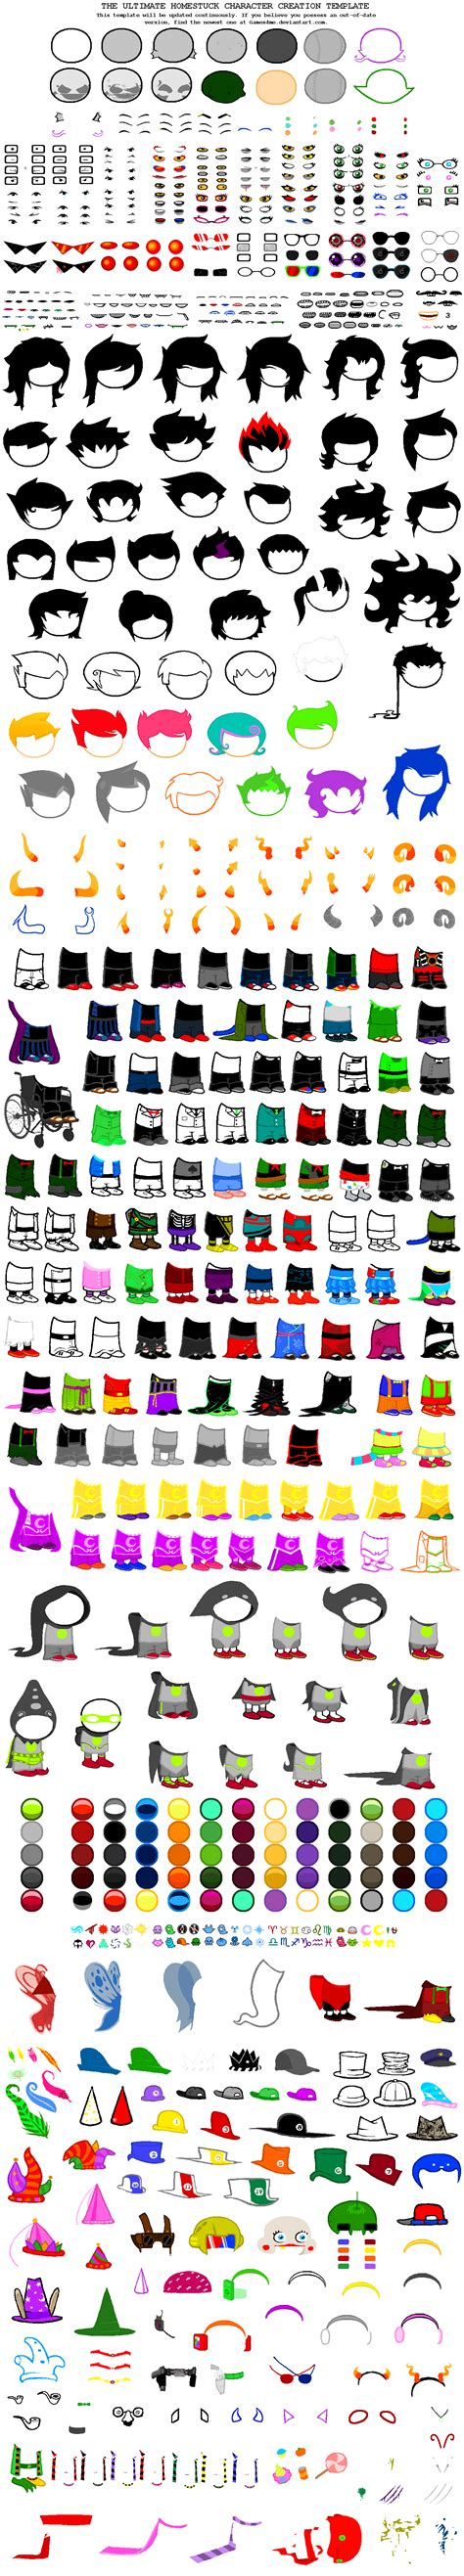 ultima character templates ultimate homestuck character creation template by games4me